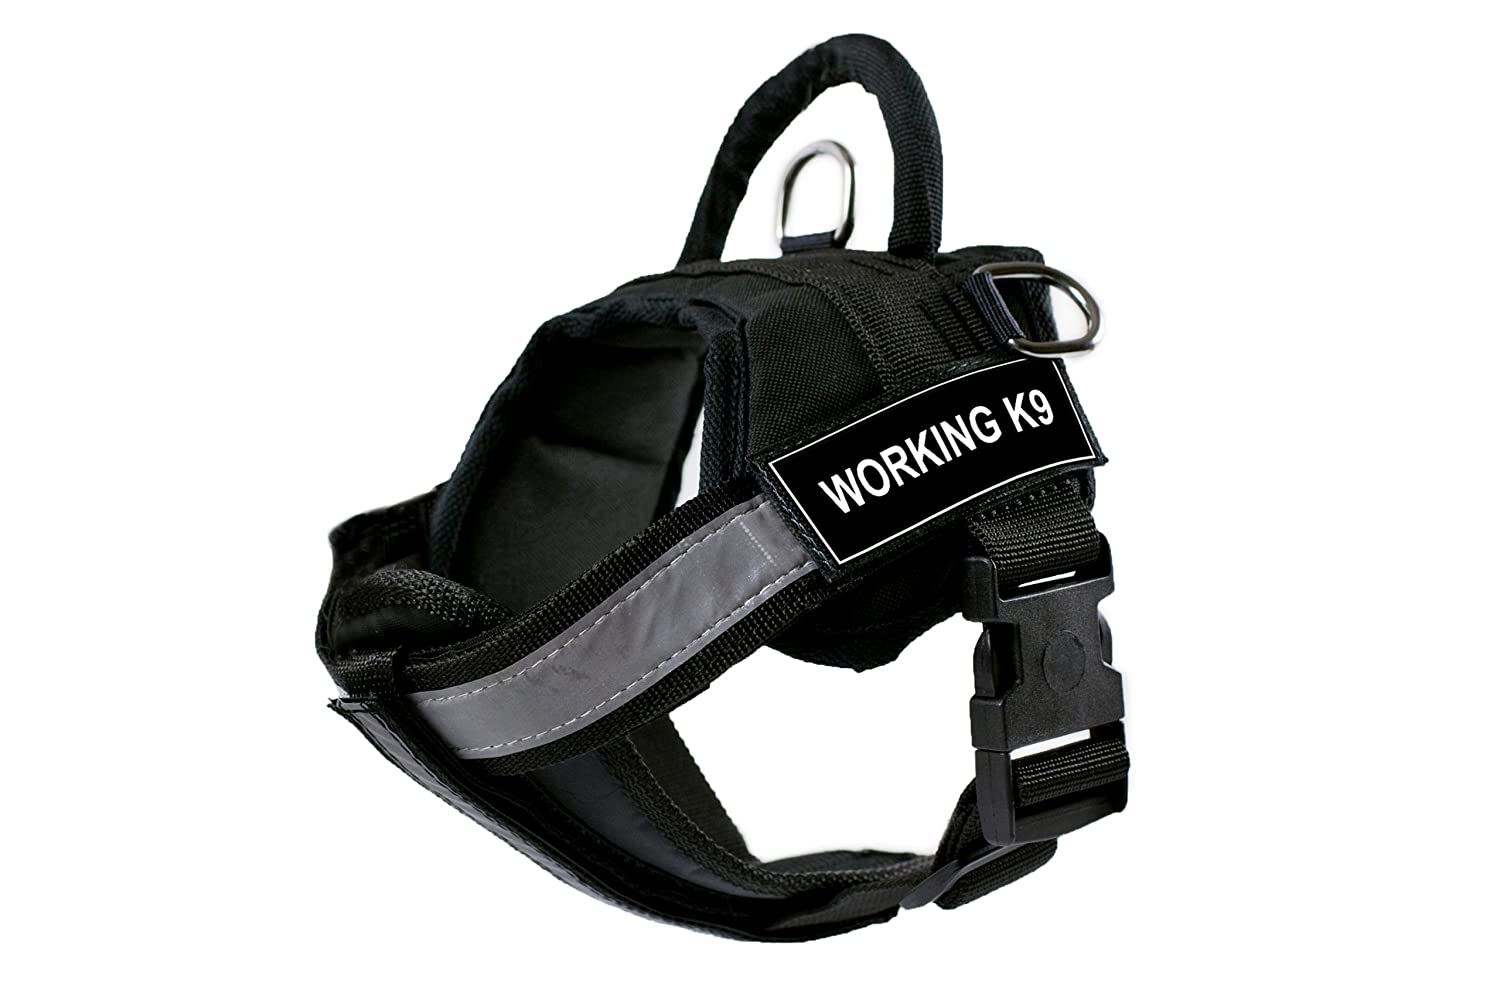 DT Works Harness with Padded Reflective Chest Straps, Working K9, Black, Small, Fits Girth Size  25-Inch to 34-Inch